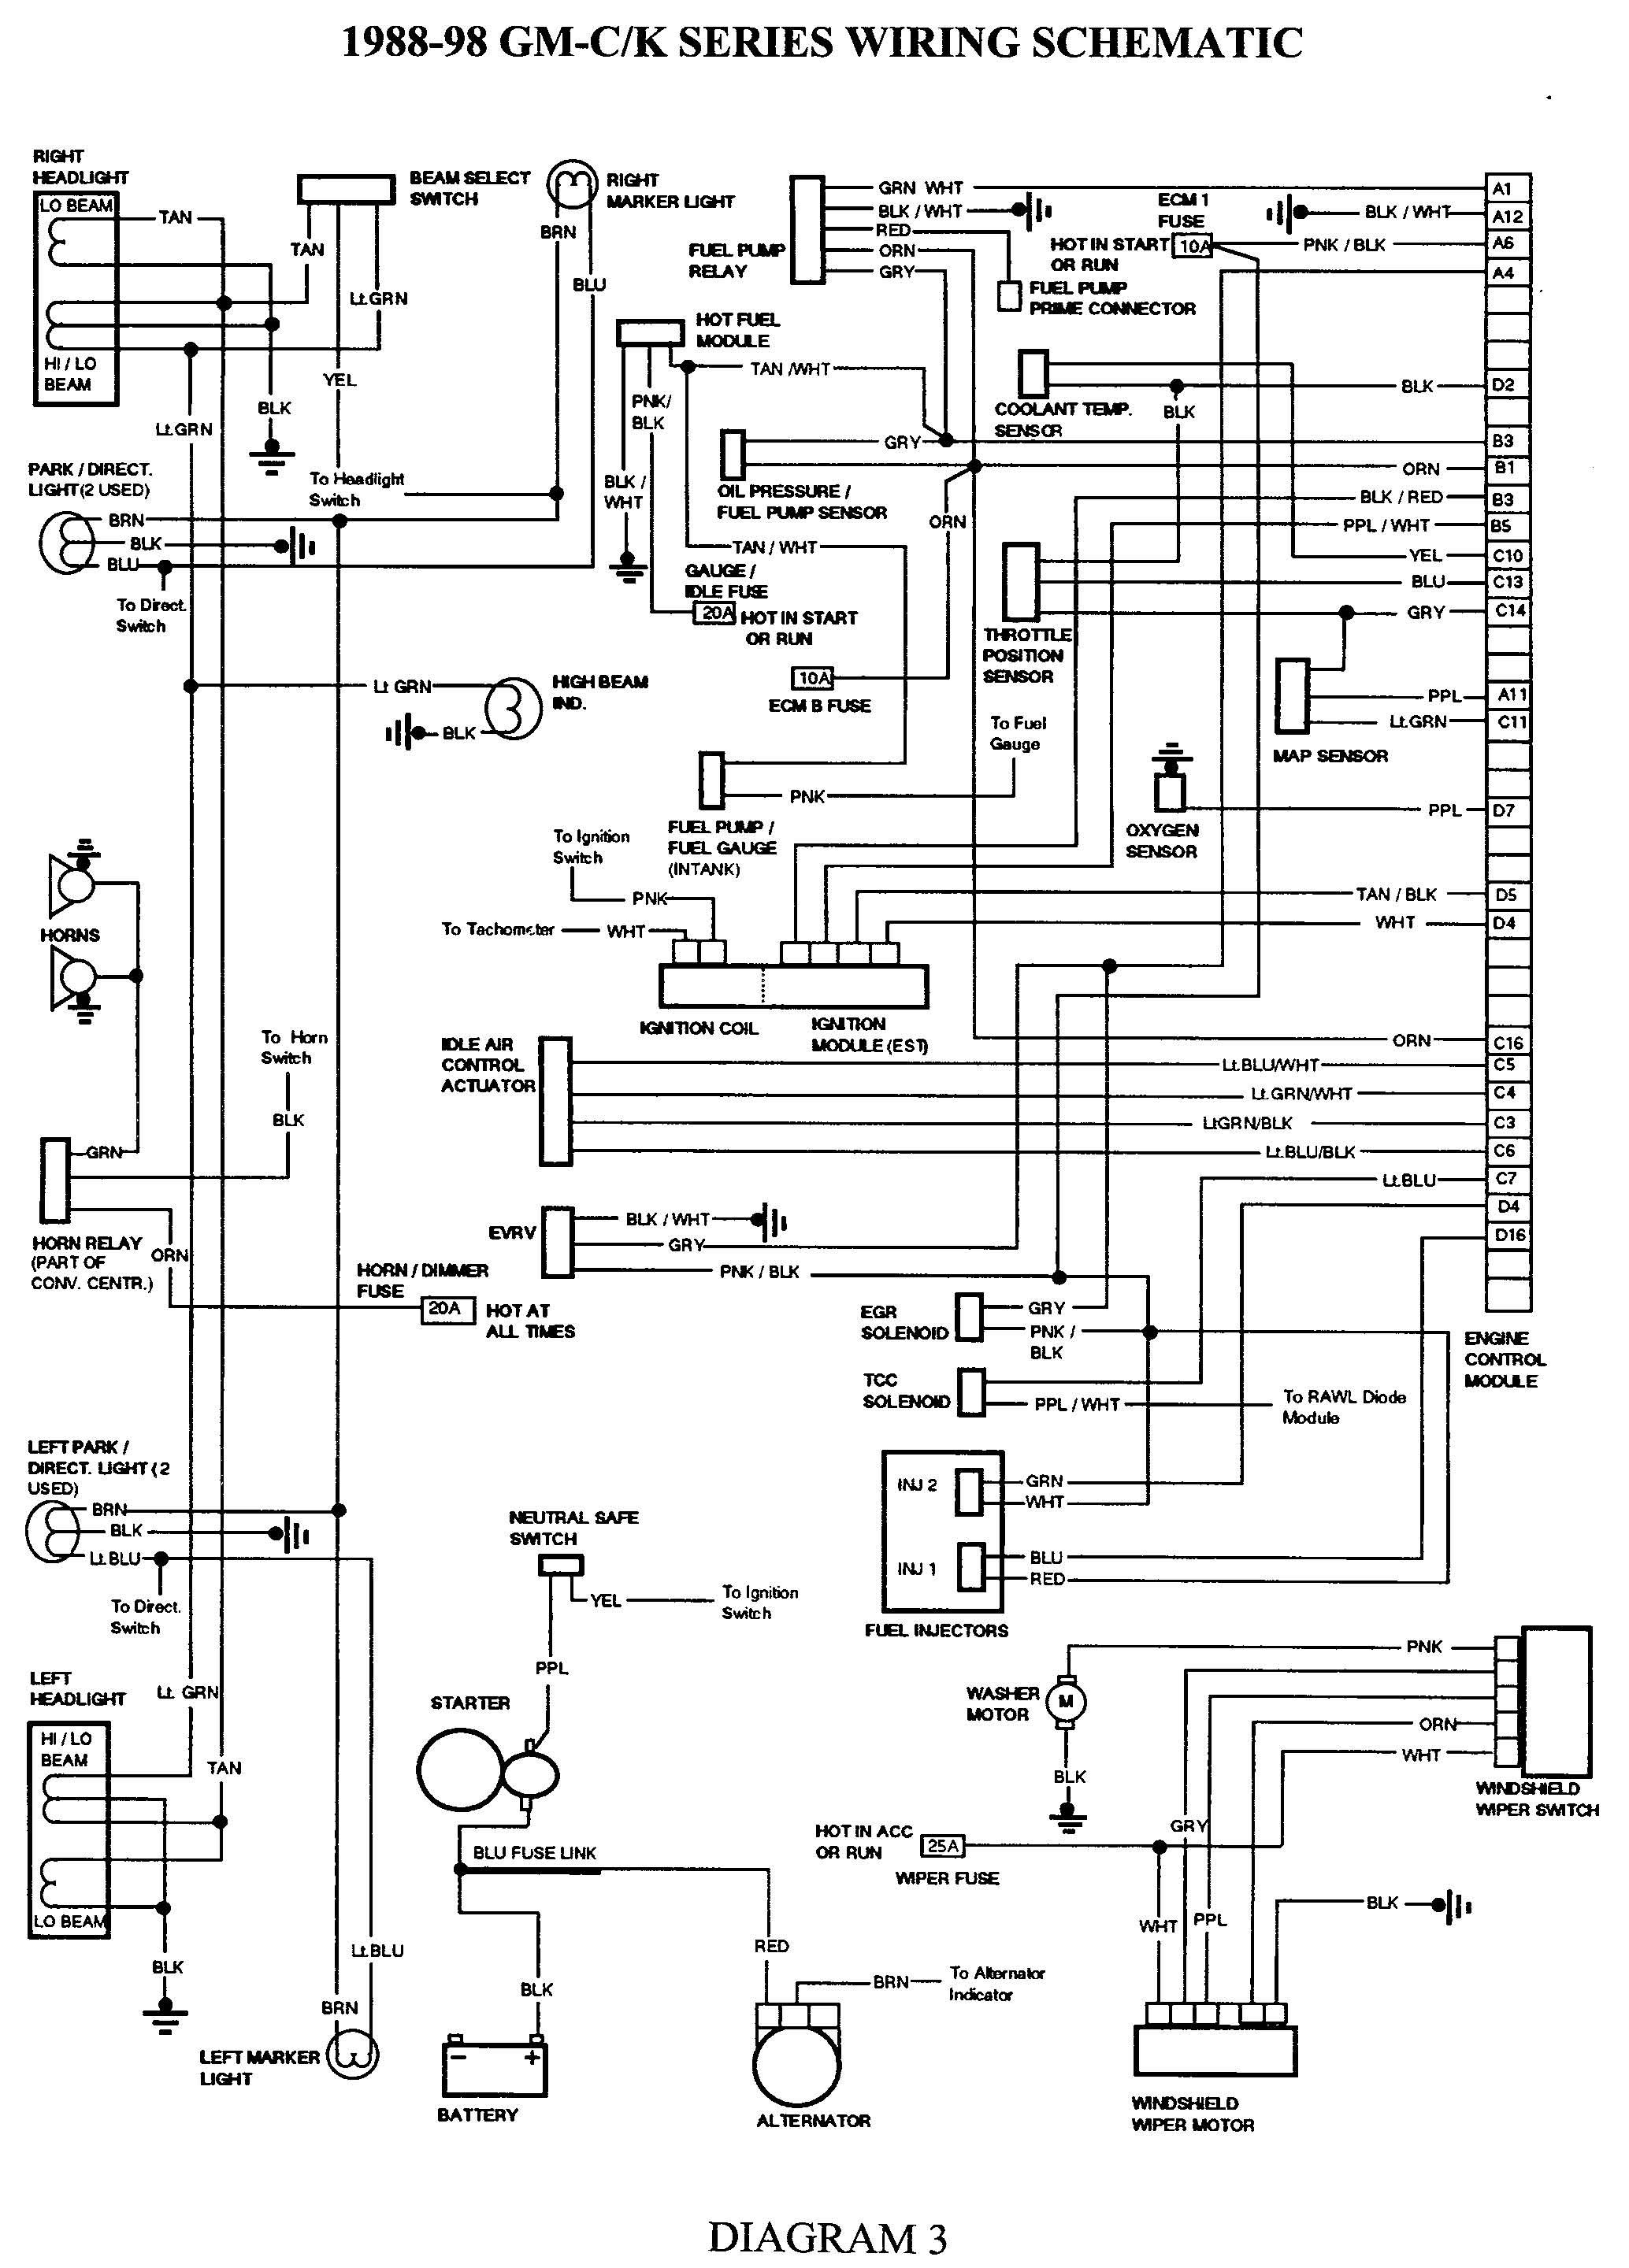 gm gauge diagram wiring diagram img gm gauge cluster wiring diagram gm gauge diagram [ 2068 x 2880 Pixel ]